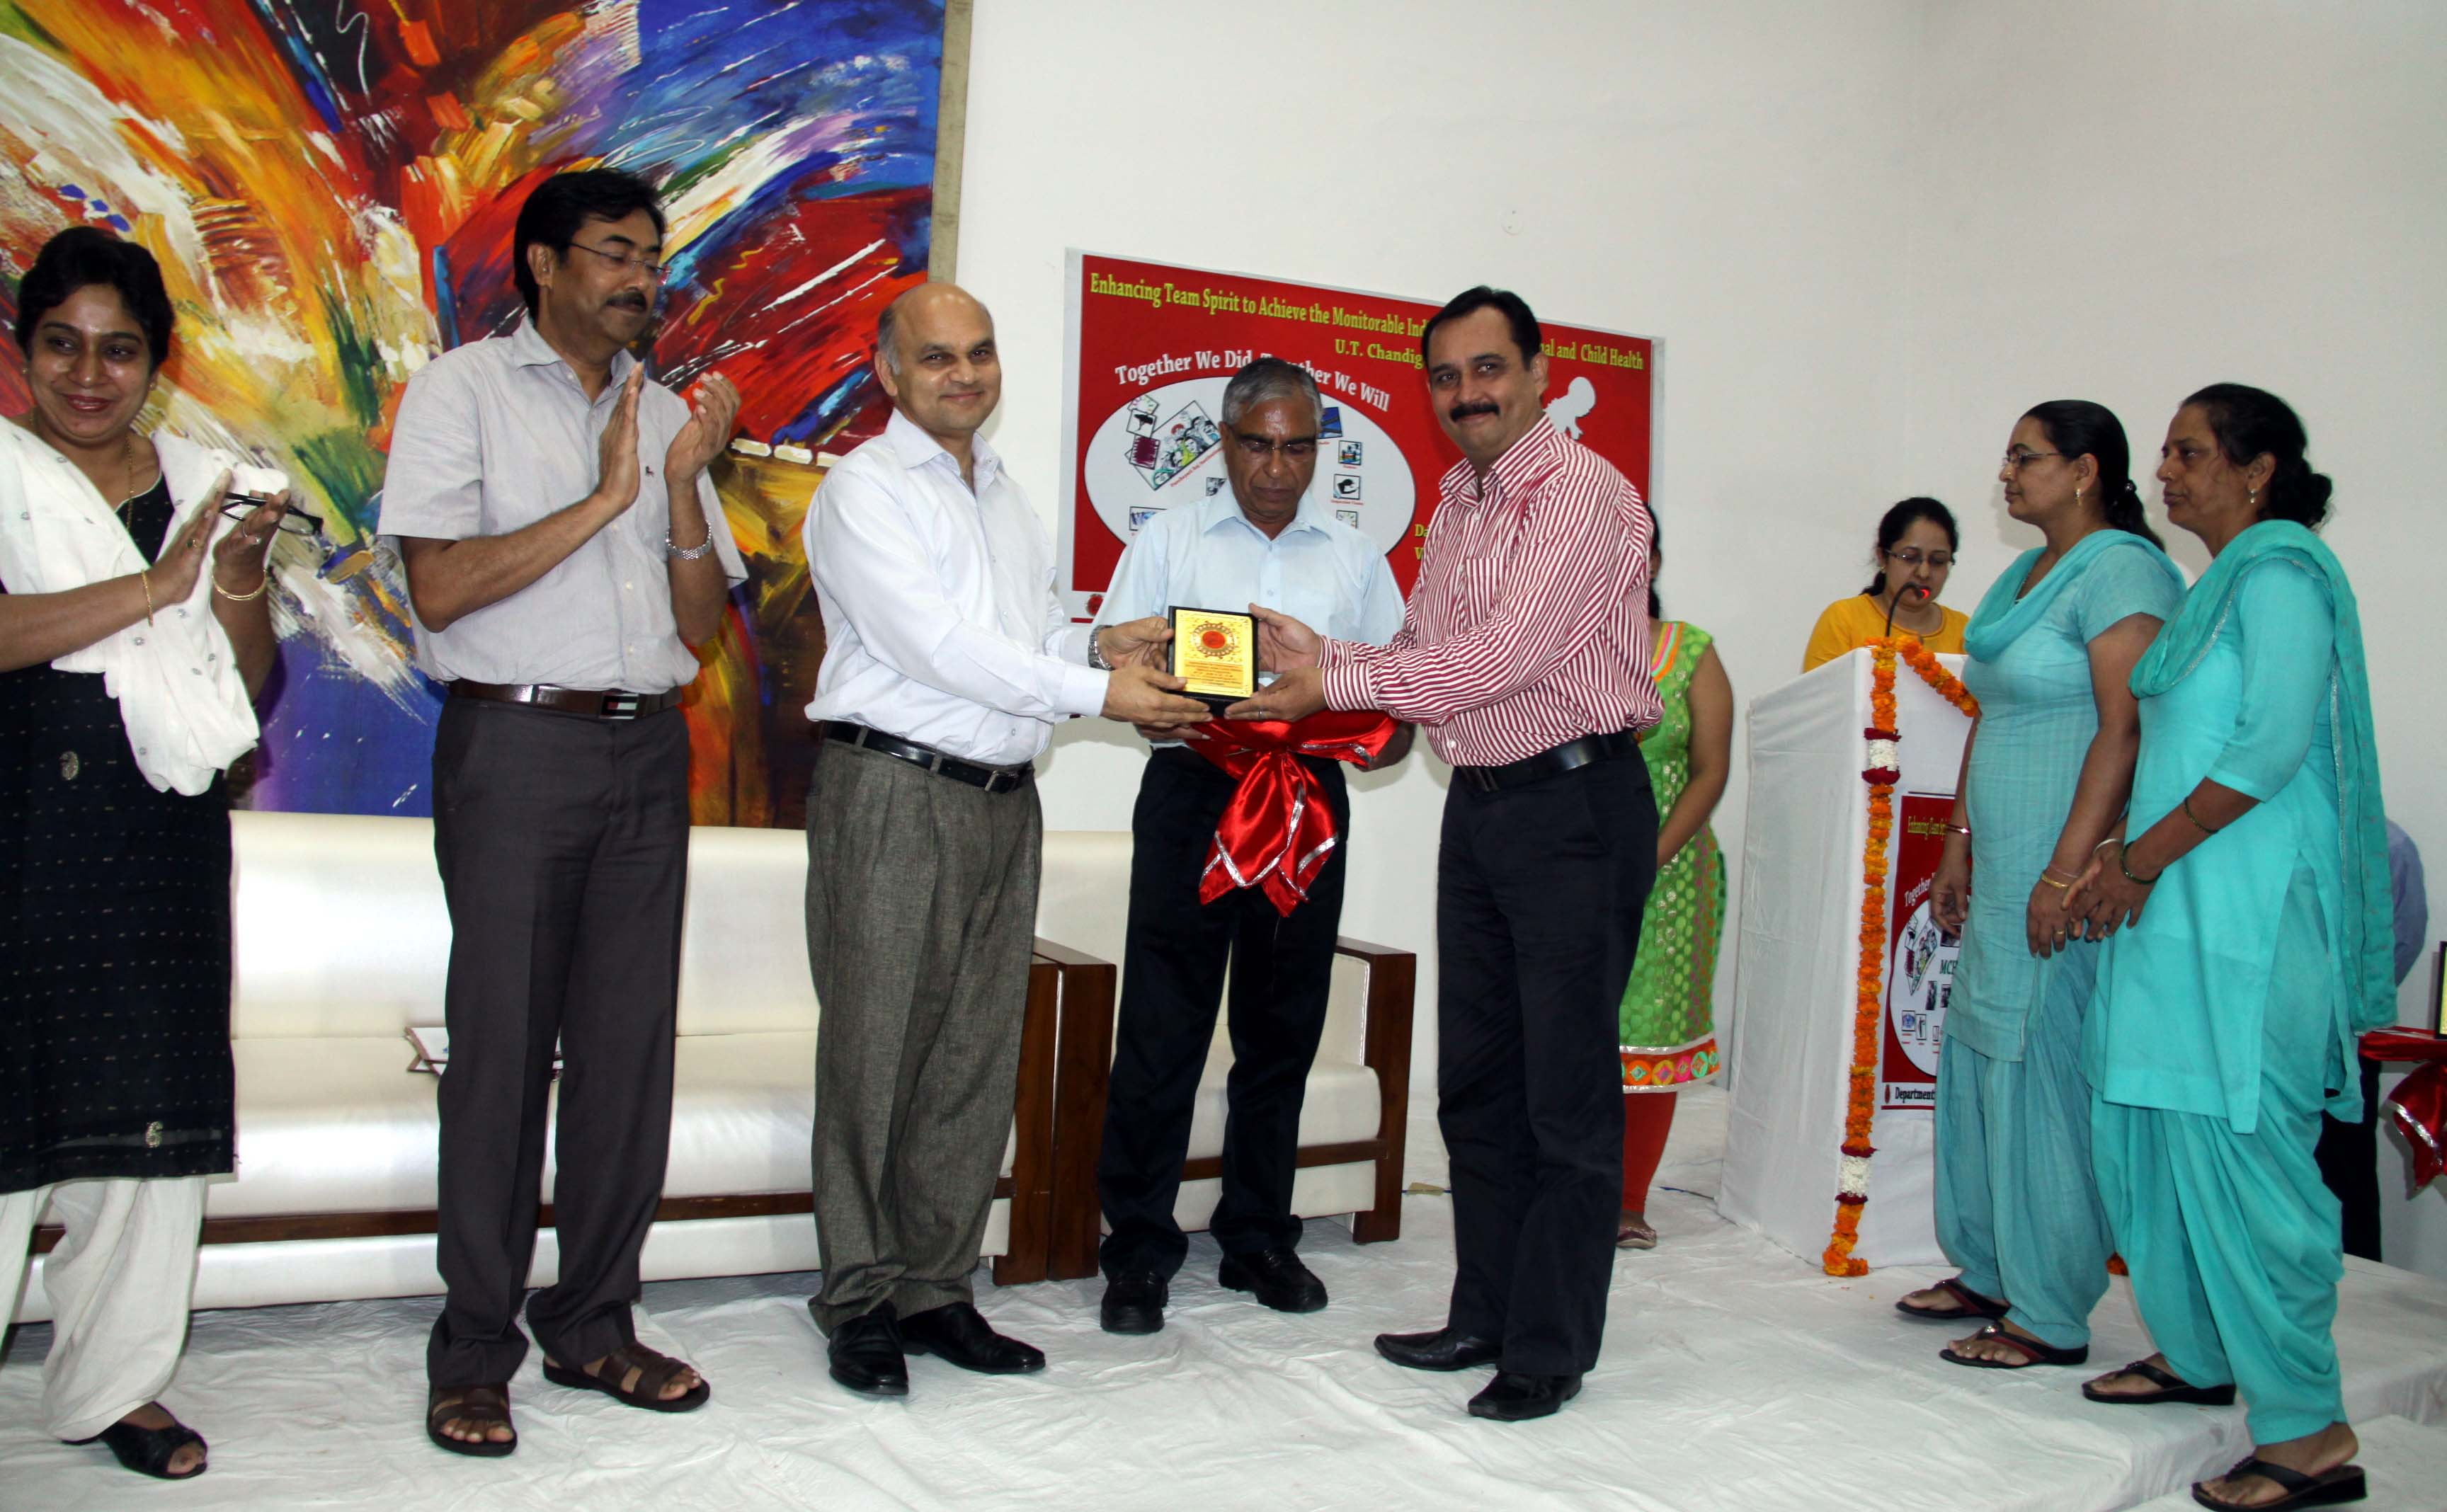 The Adviser to the Administrator, UT, Chandigarh, Mr. K.K. Sharma honoring the teams, Stakeholders to improve the  Monitorable Indicators under RMNCH+A through the institutionalized good practices in U.T. Chandigarh for the year 2013-14 in the Felicitation Function at UT State Guest House, Chandigarh on Monday, July 21, 2014.